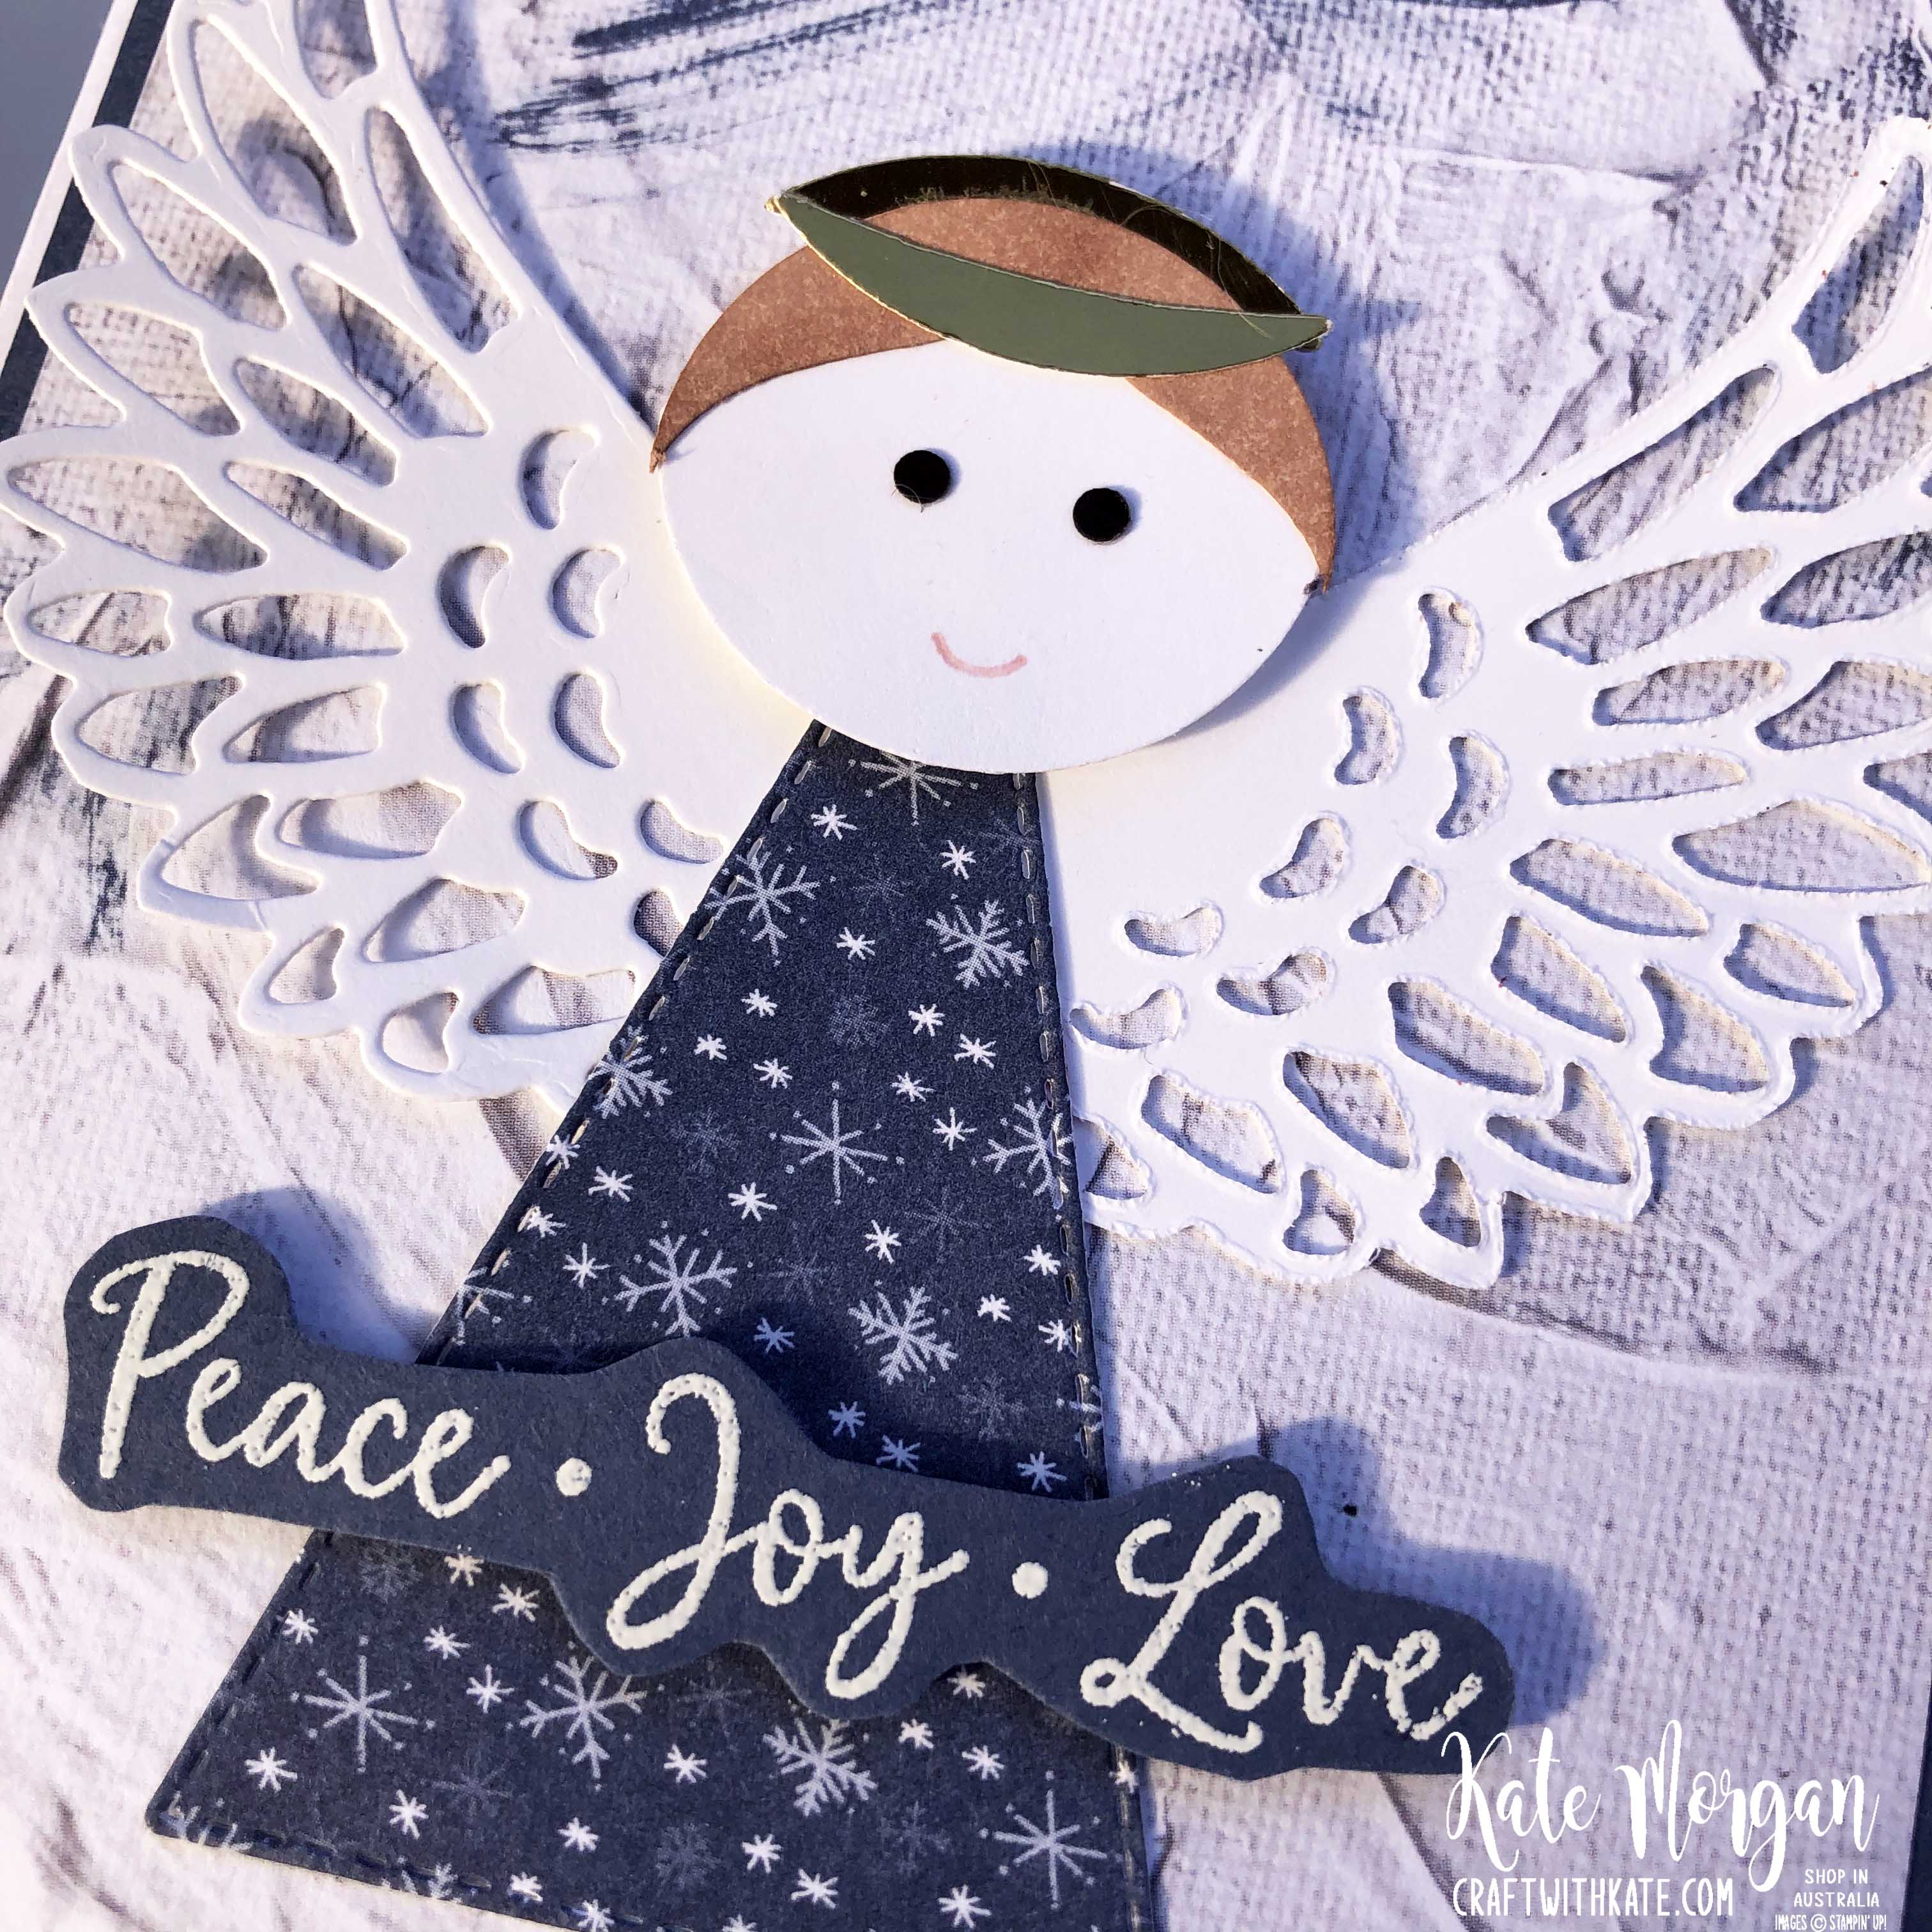 Christmas Angel by Kate Morgan Stampin Up Australia 2020 Aug-Dec Mini catalogue Dove of Hope c